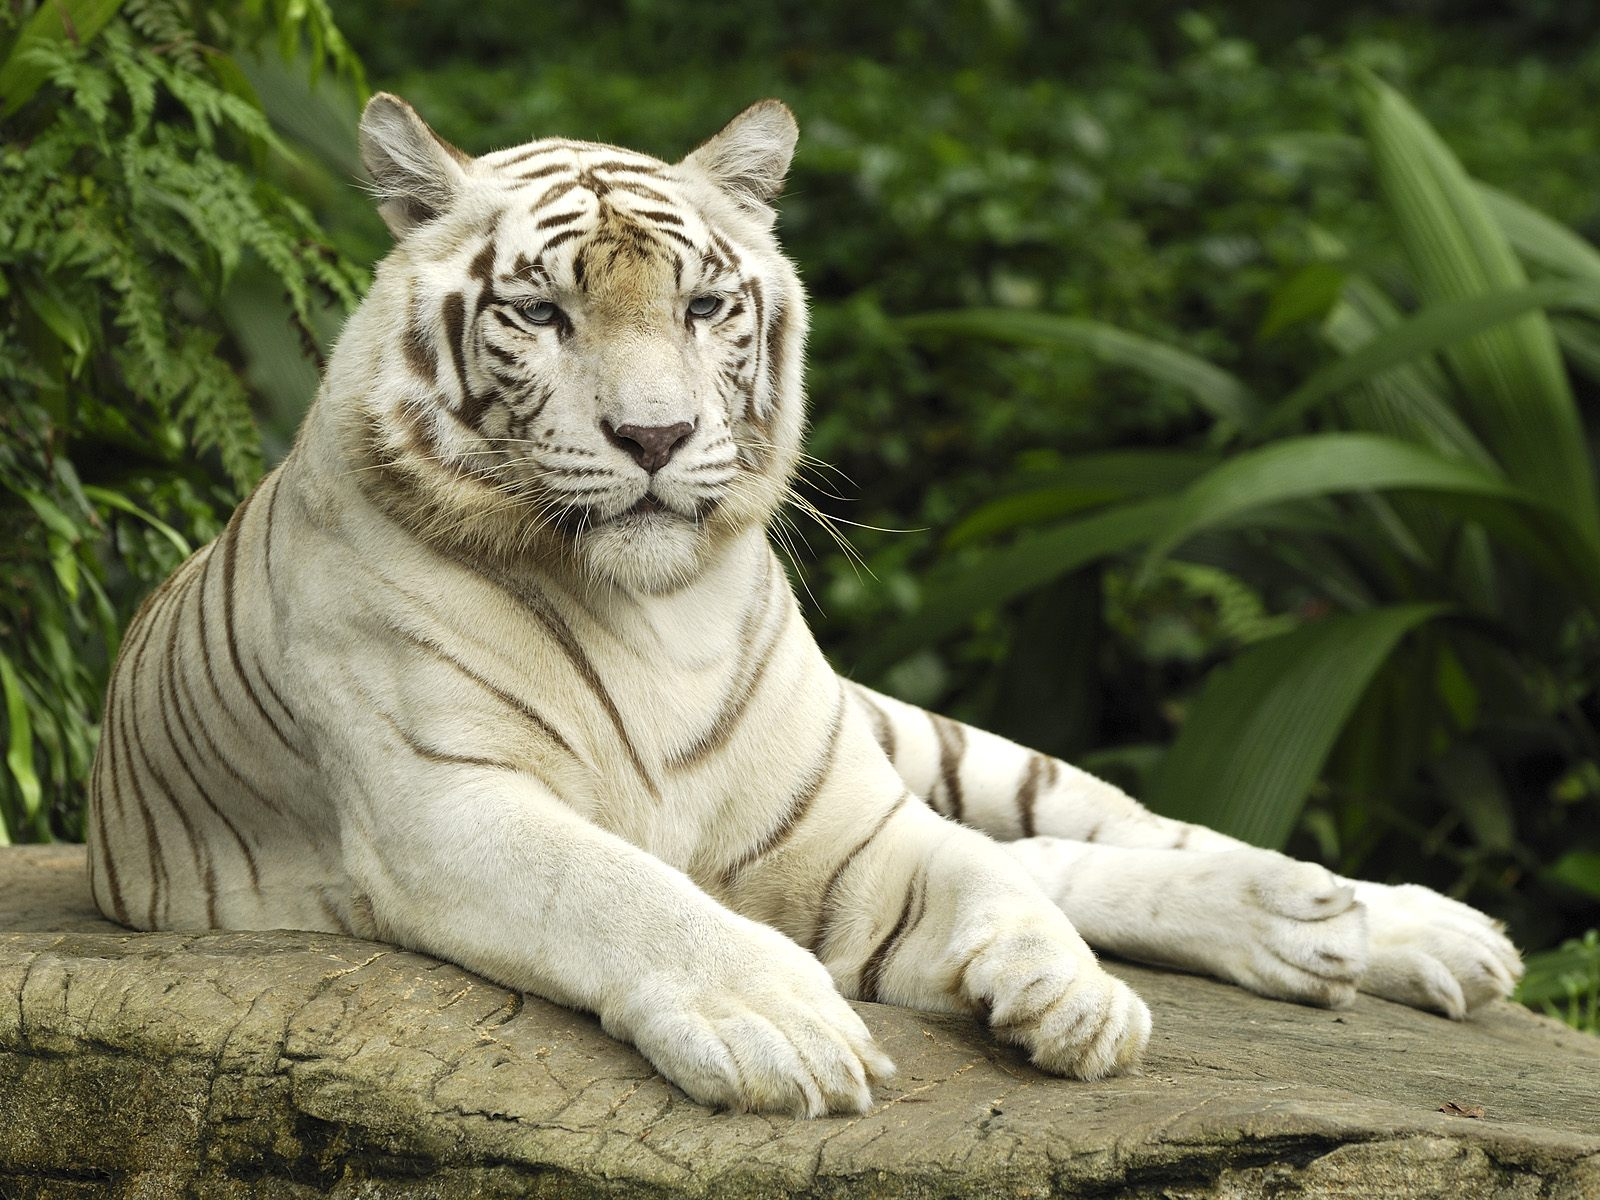 White bengal tiger wallpapers - photo#12